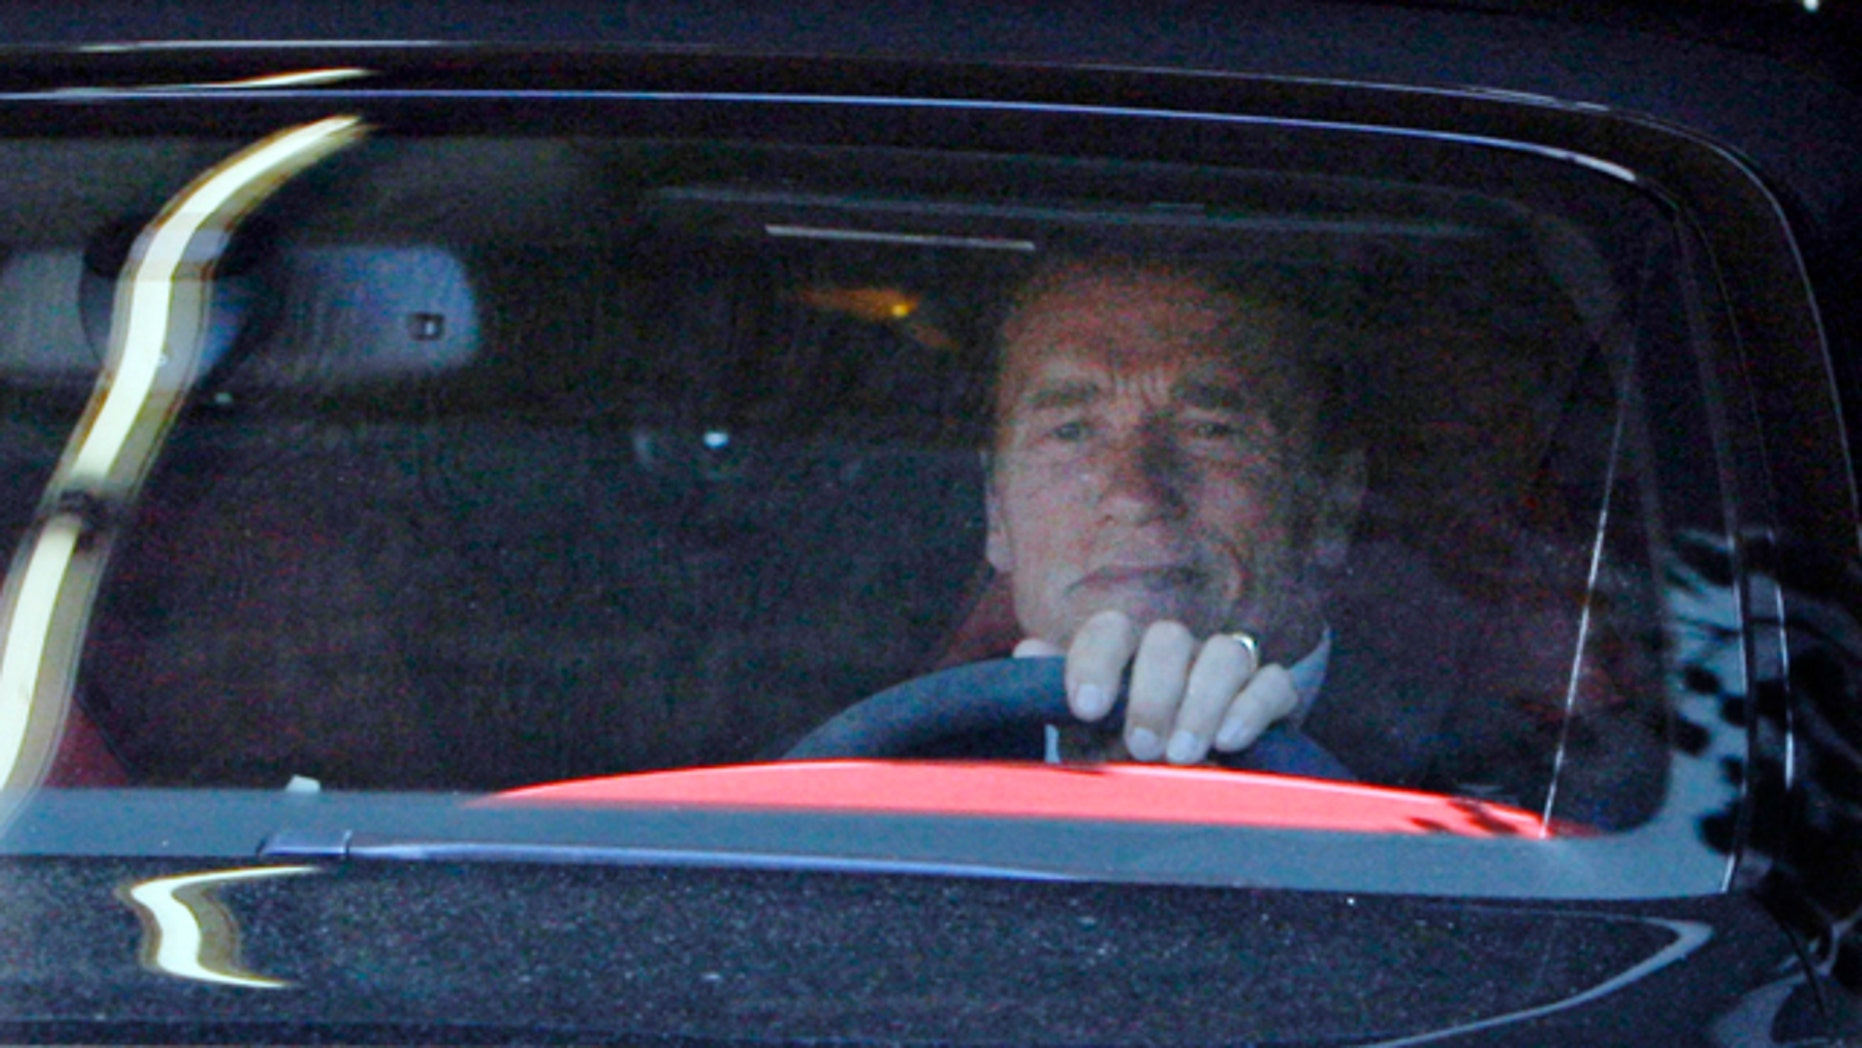 Former California Governor Arnold Schwarzenegger leaves his office Tuesday May 17, 2011 in Santa Monica, Calif.